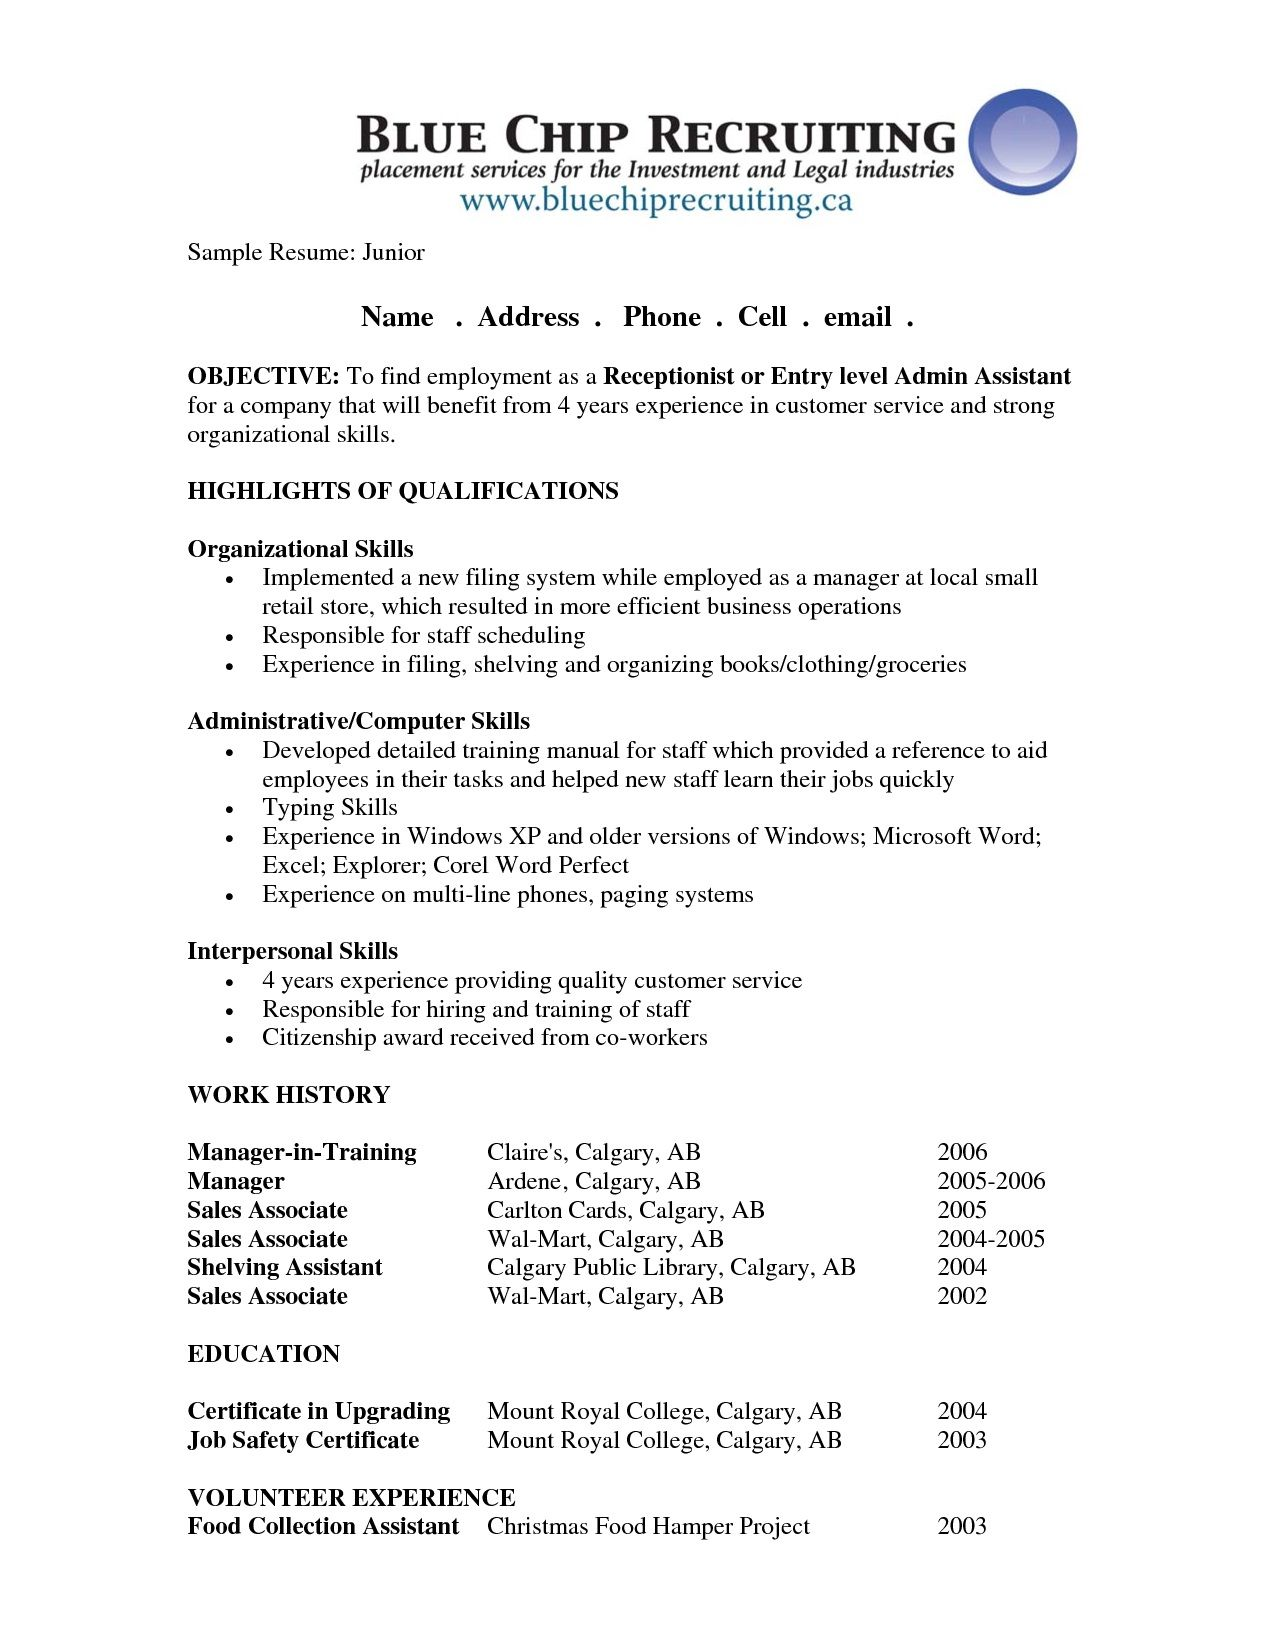 image for resume objective summary examples sample resume receptionist resume objective sample are really great examples of resume and curriculum vitae for those who are looking for guidance